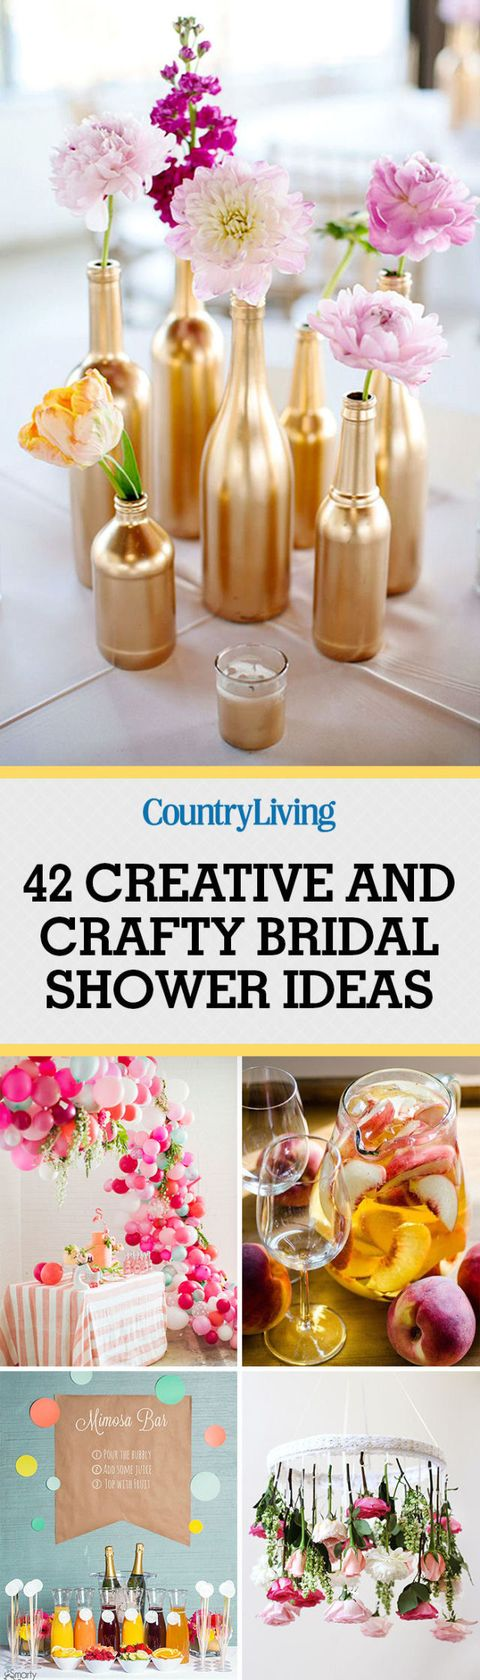 save these ideas save these bridal shower